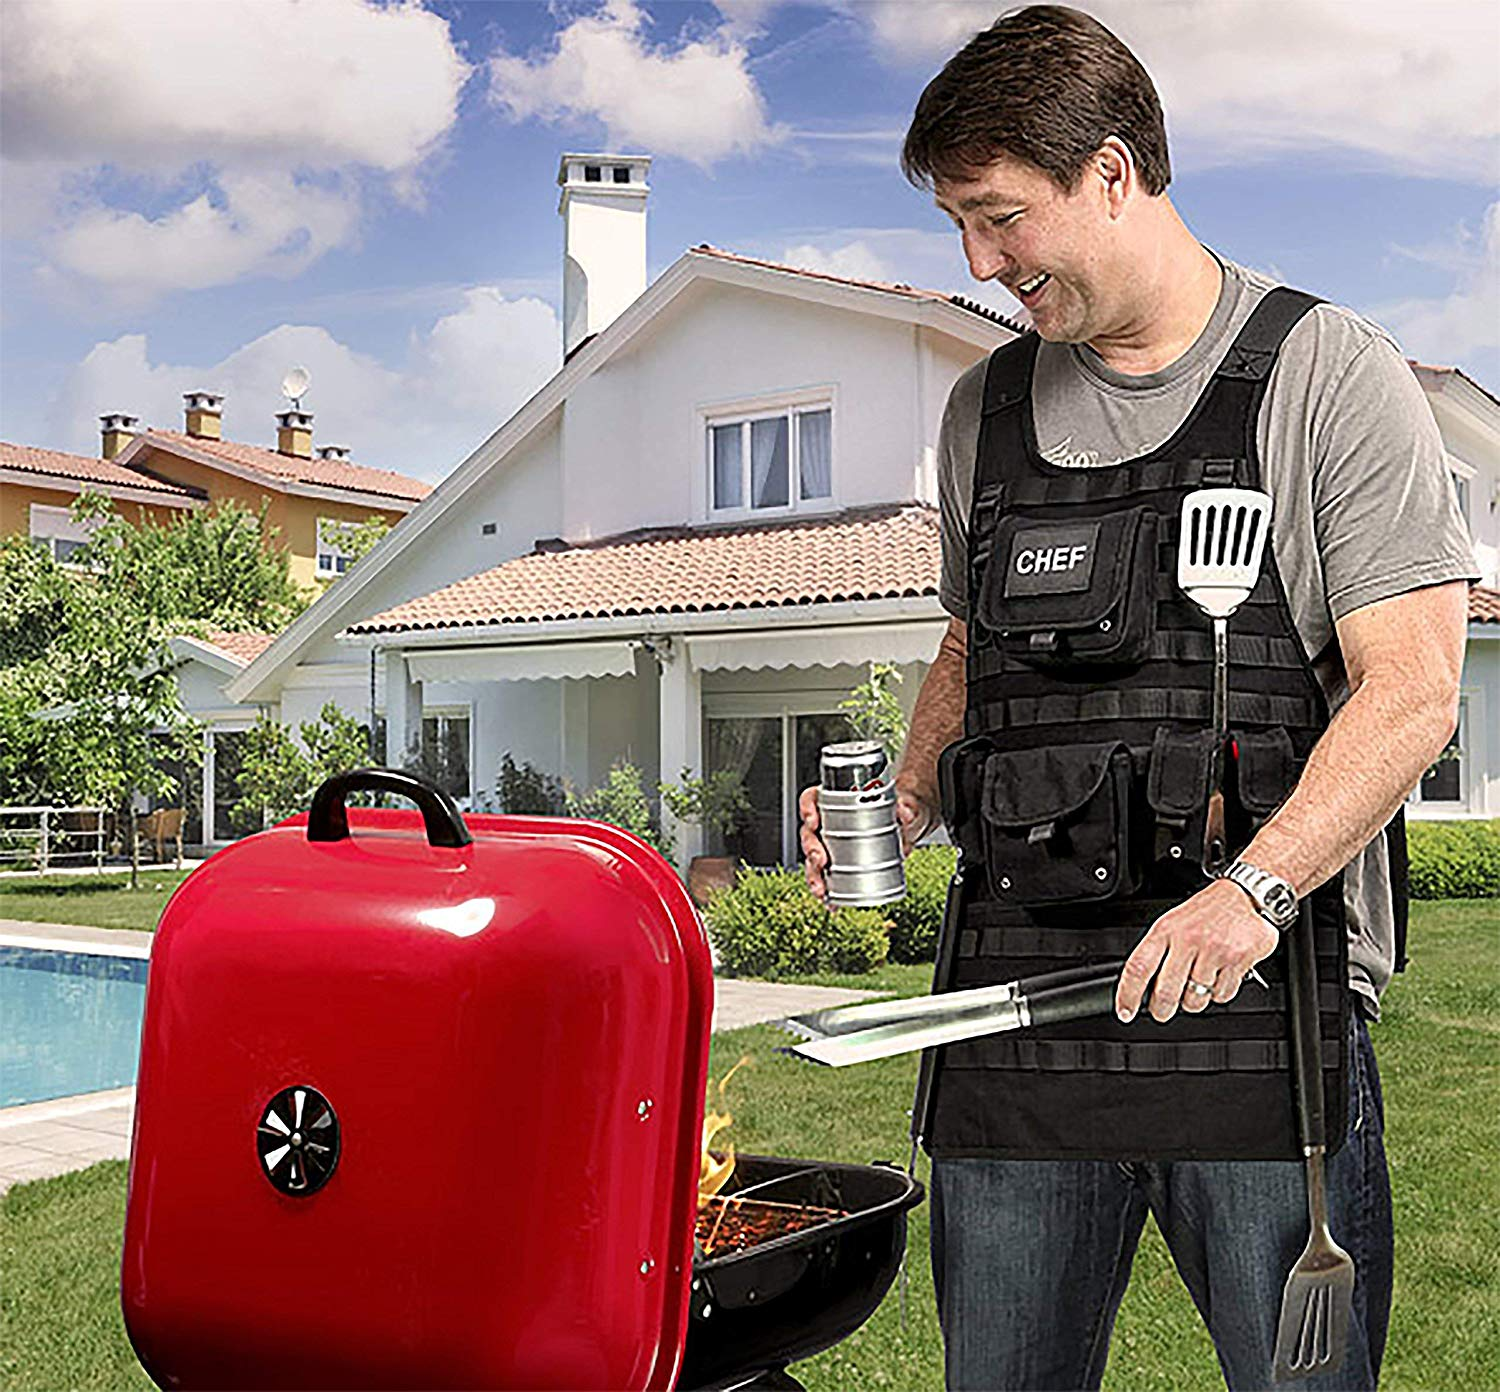 Tactical Grilling Apron & MOLLE Gear All Grill Sergeants Will Love!